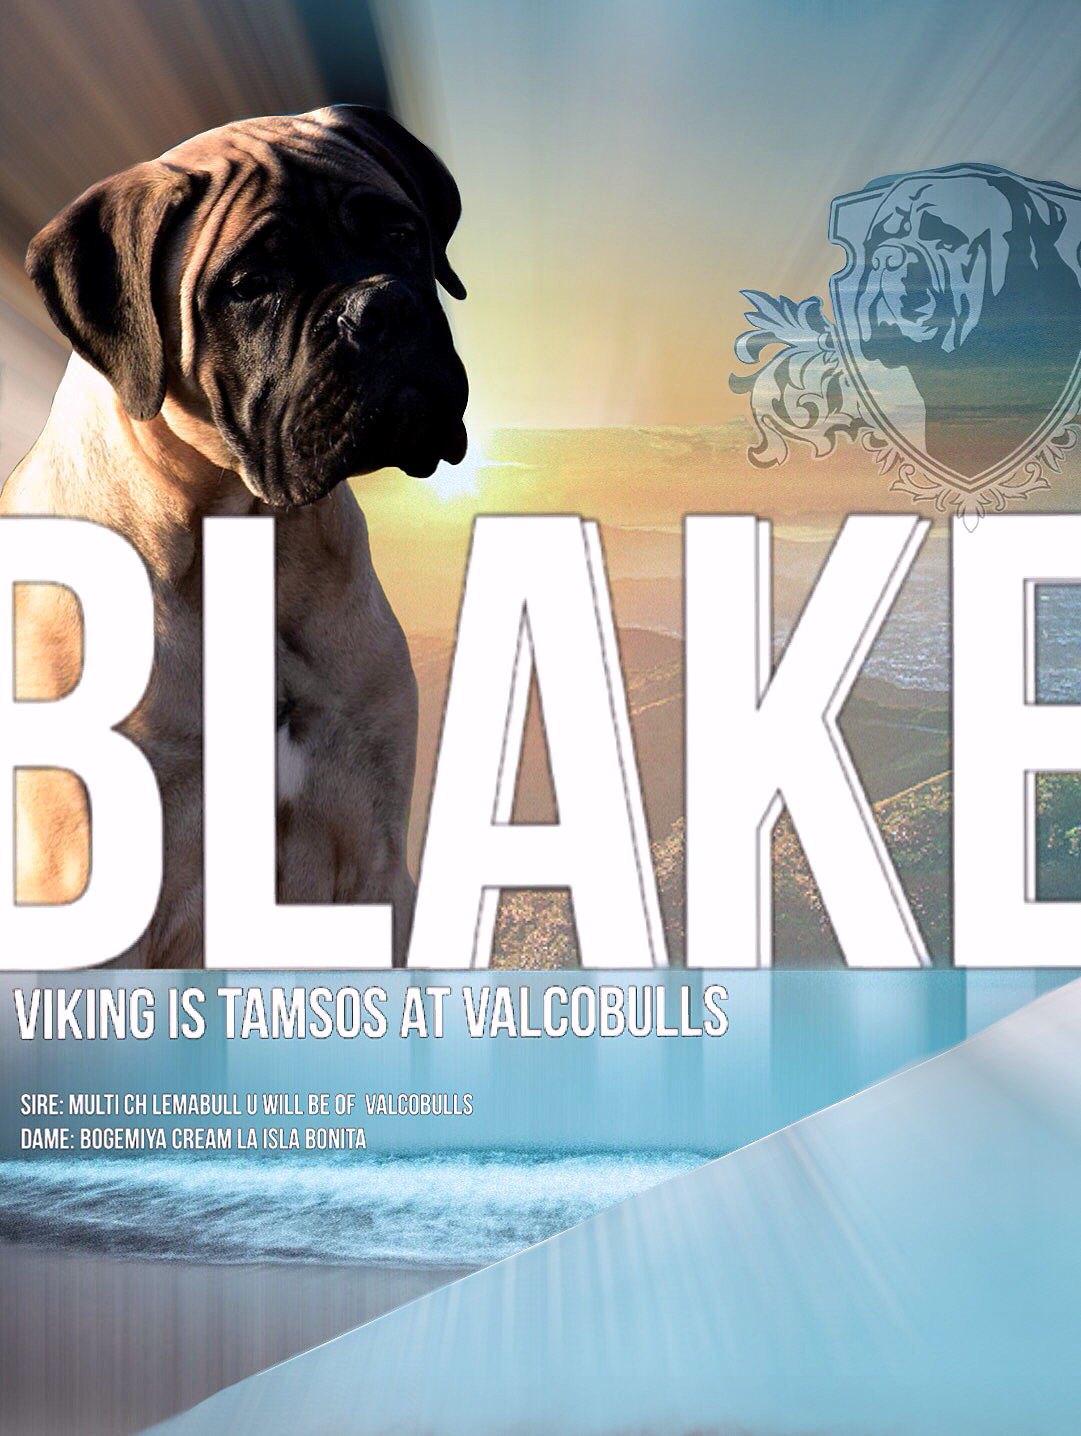 Viking is TAMSOS at Valcobulls